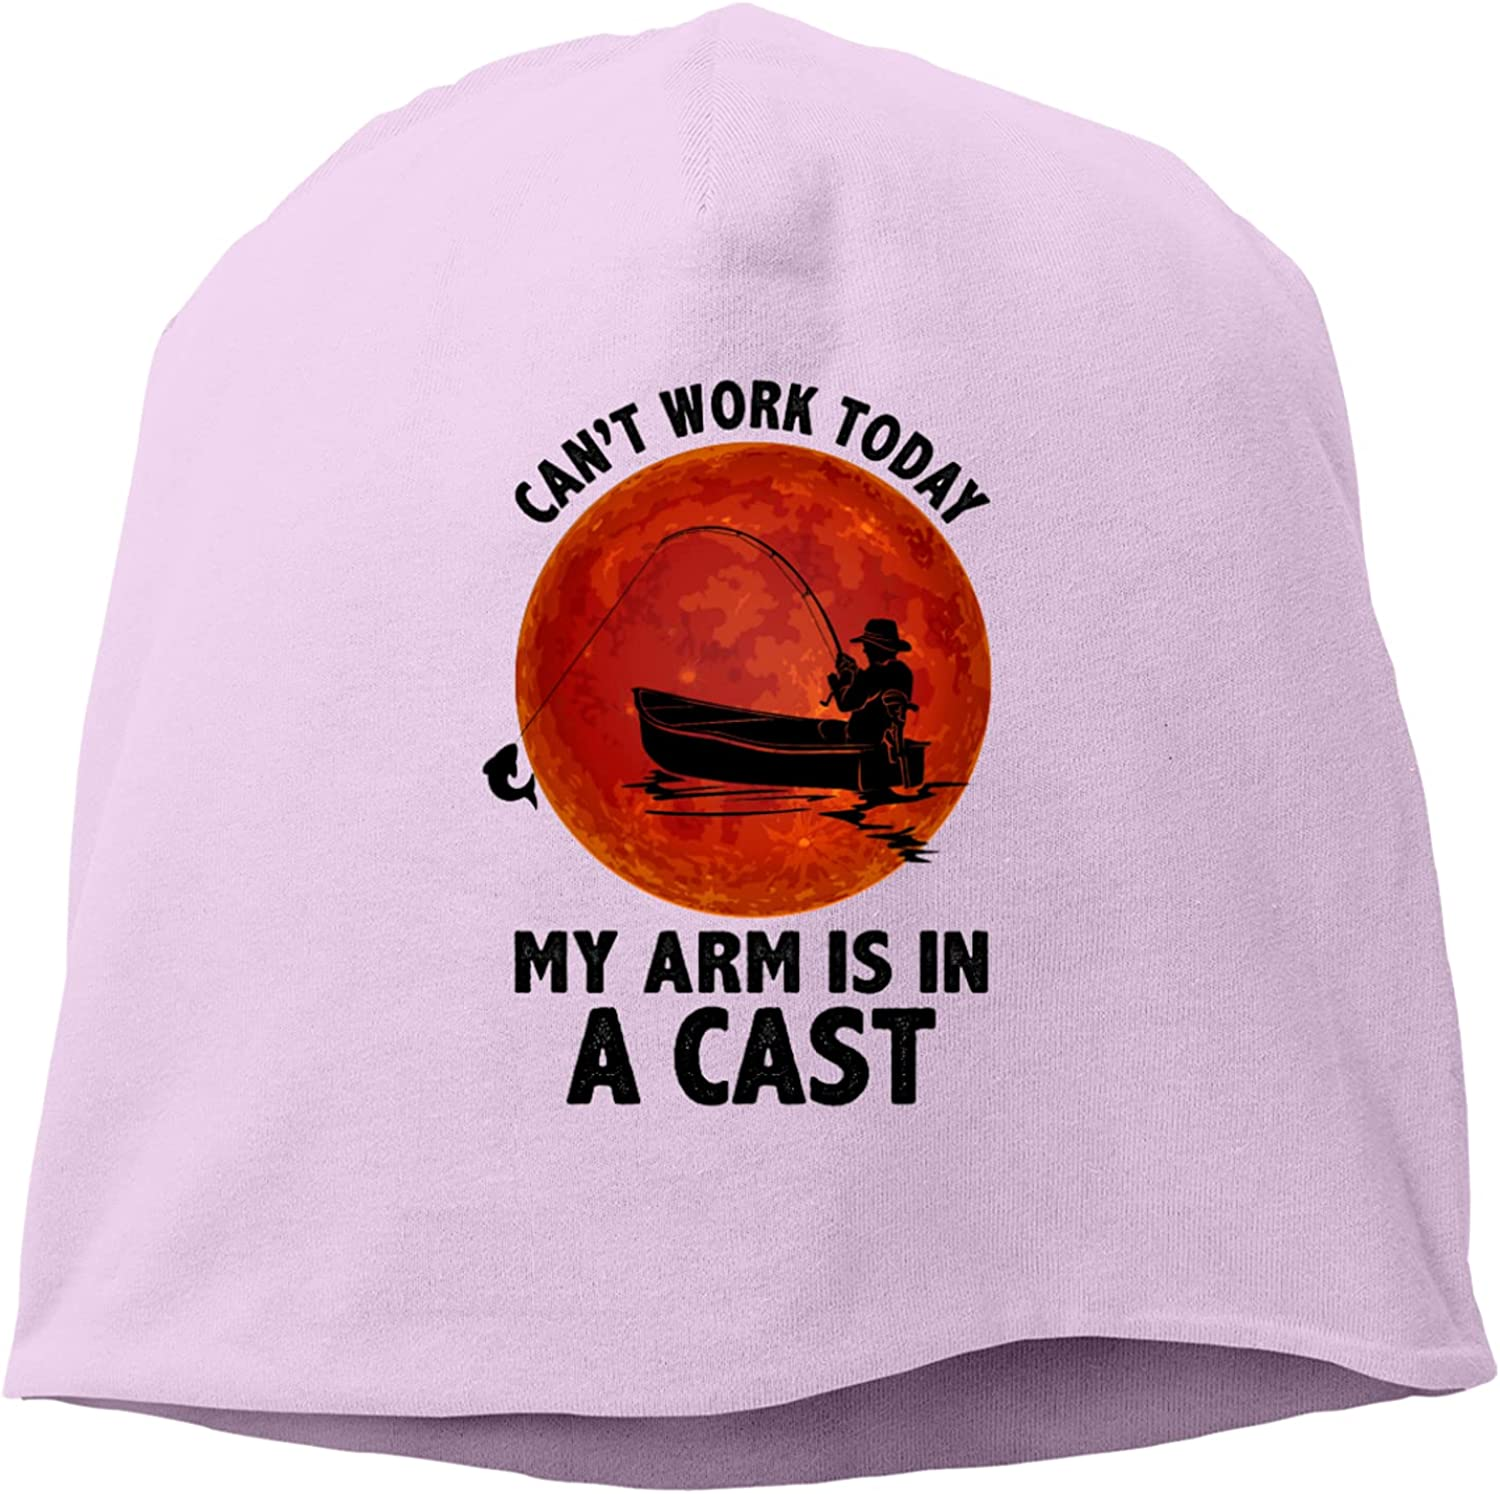 Can't Work Today My Popular product Arm is A Hed Cast in Knitted Hat,Unisex Max 71% OFF